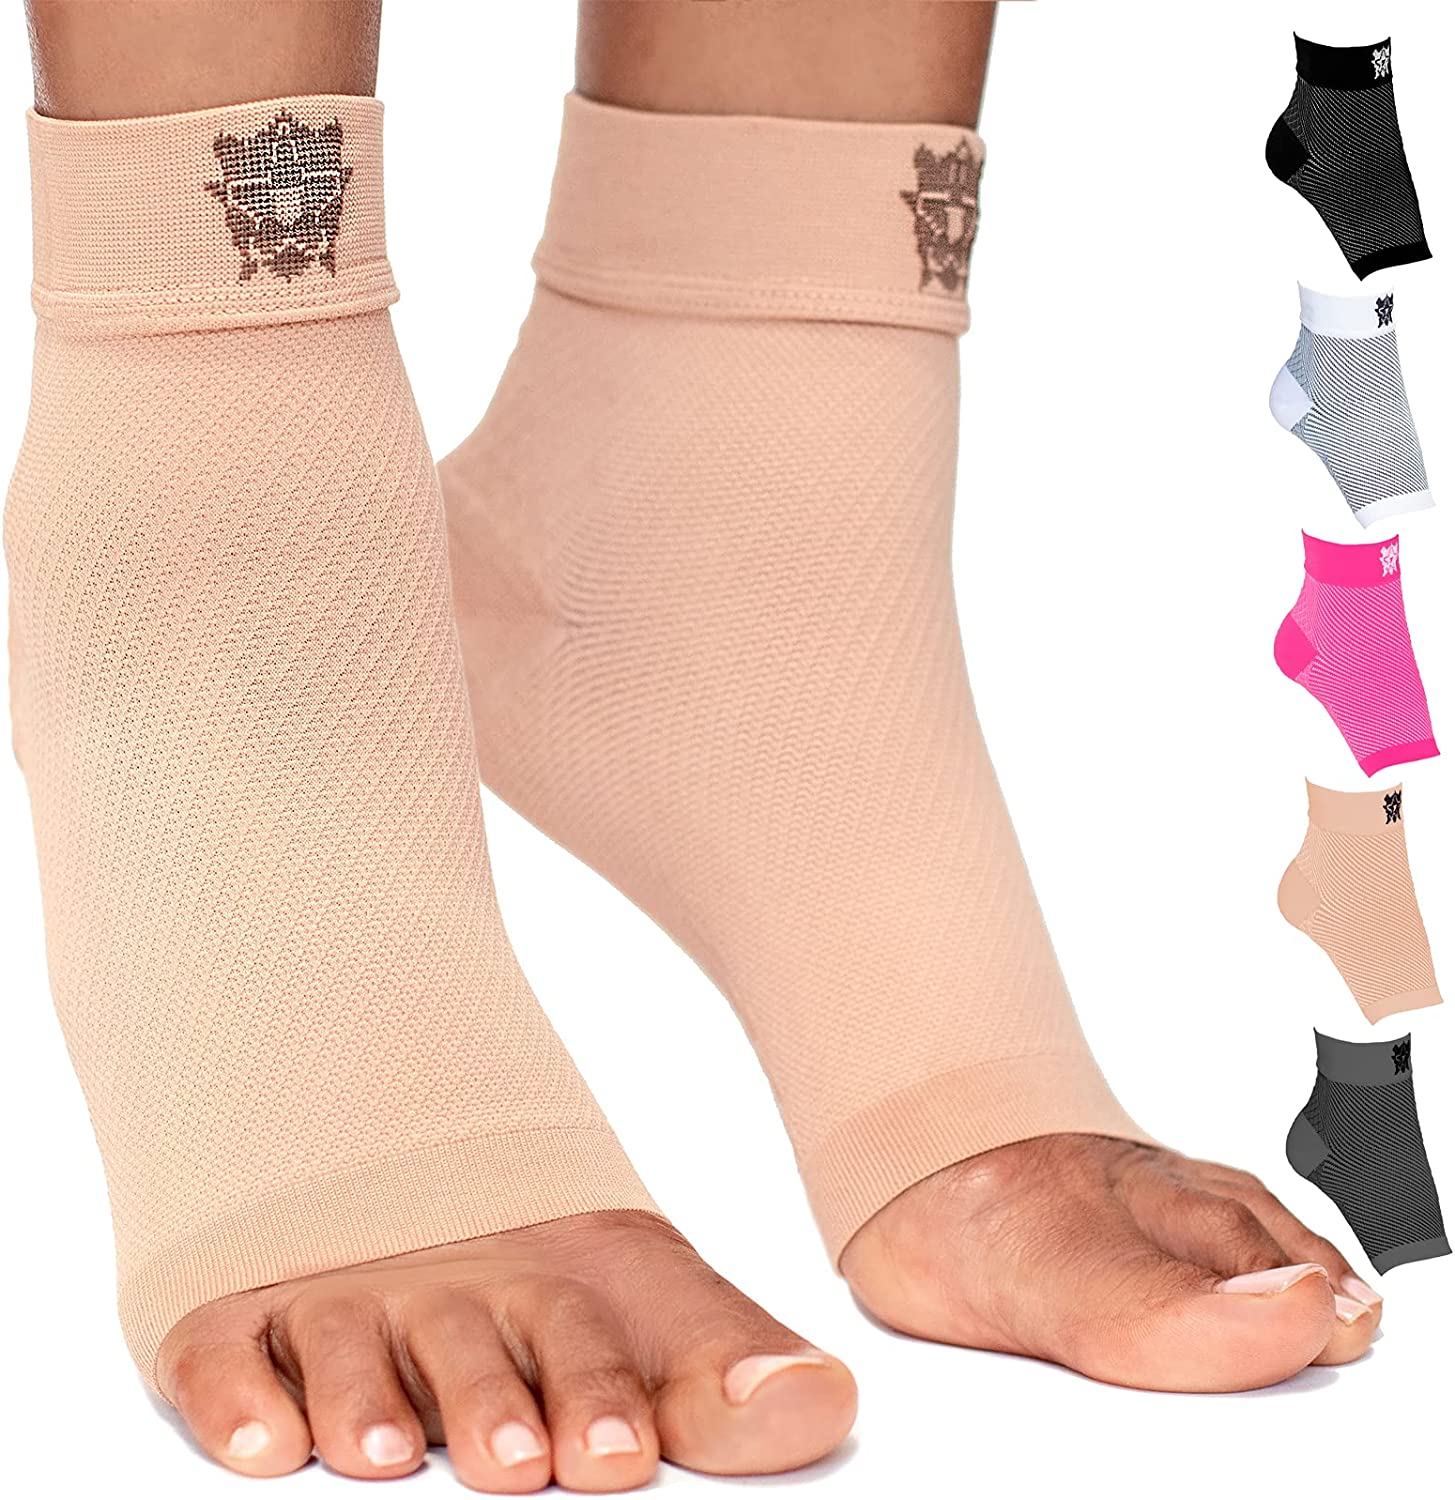 Bitly Plantar Fasciitis Compression Socks for Women & Men - Best Ankle Compression Sleeve, Nano Brace for Everyday Use - Provides Arch Support & Heel Pain Relief (Nude, Medium): Industrial & Scientific